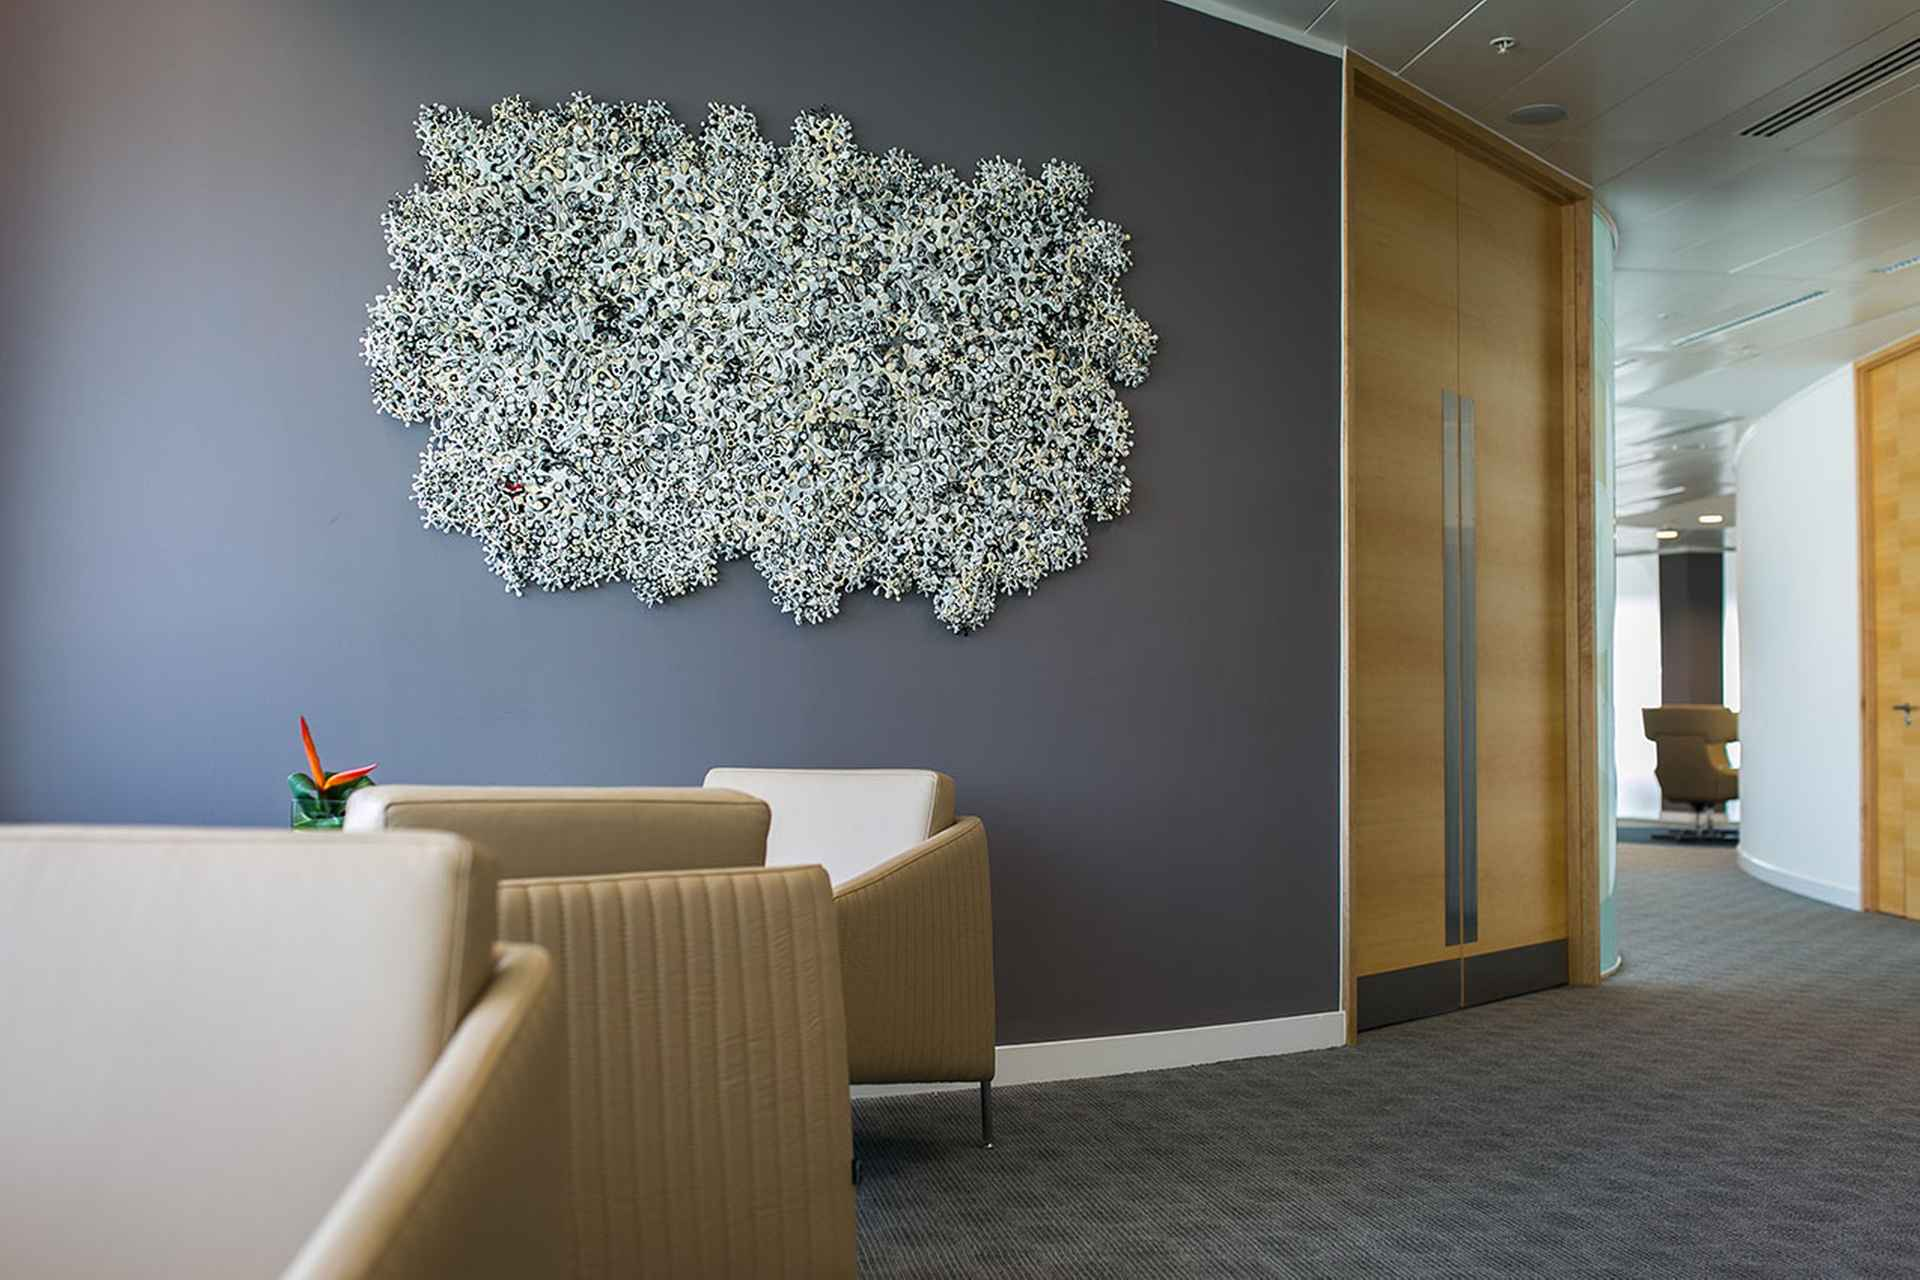 Tactile, specially commissioned, wall mounted sculpture by Stephen Farley by TLT Solicitors